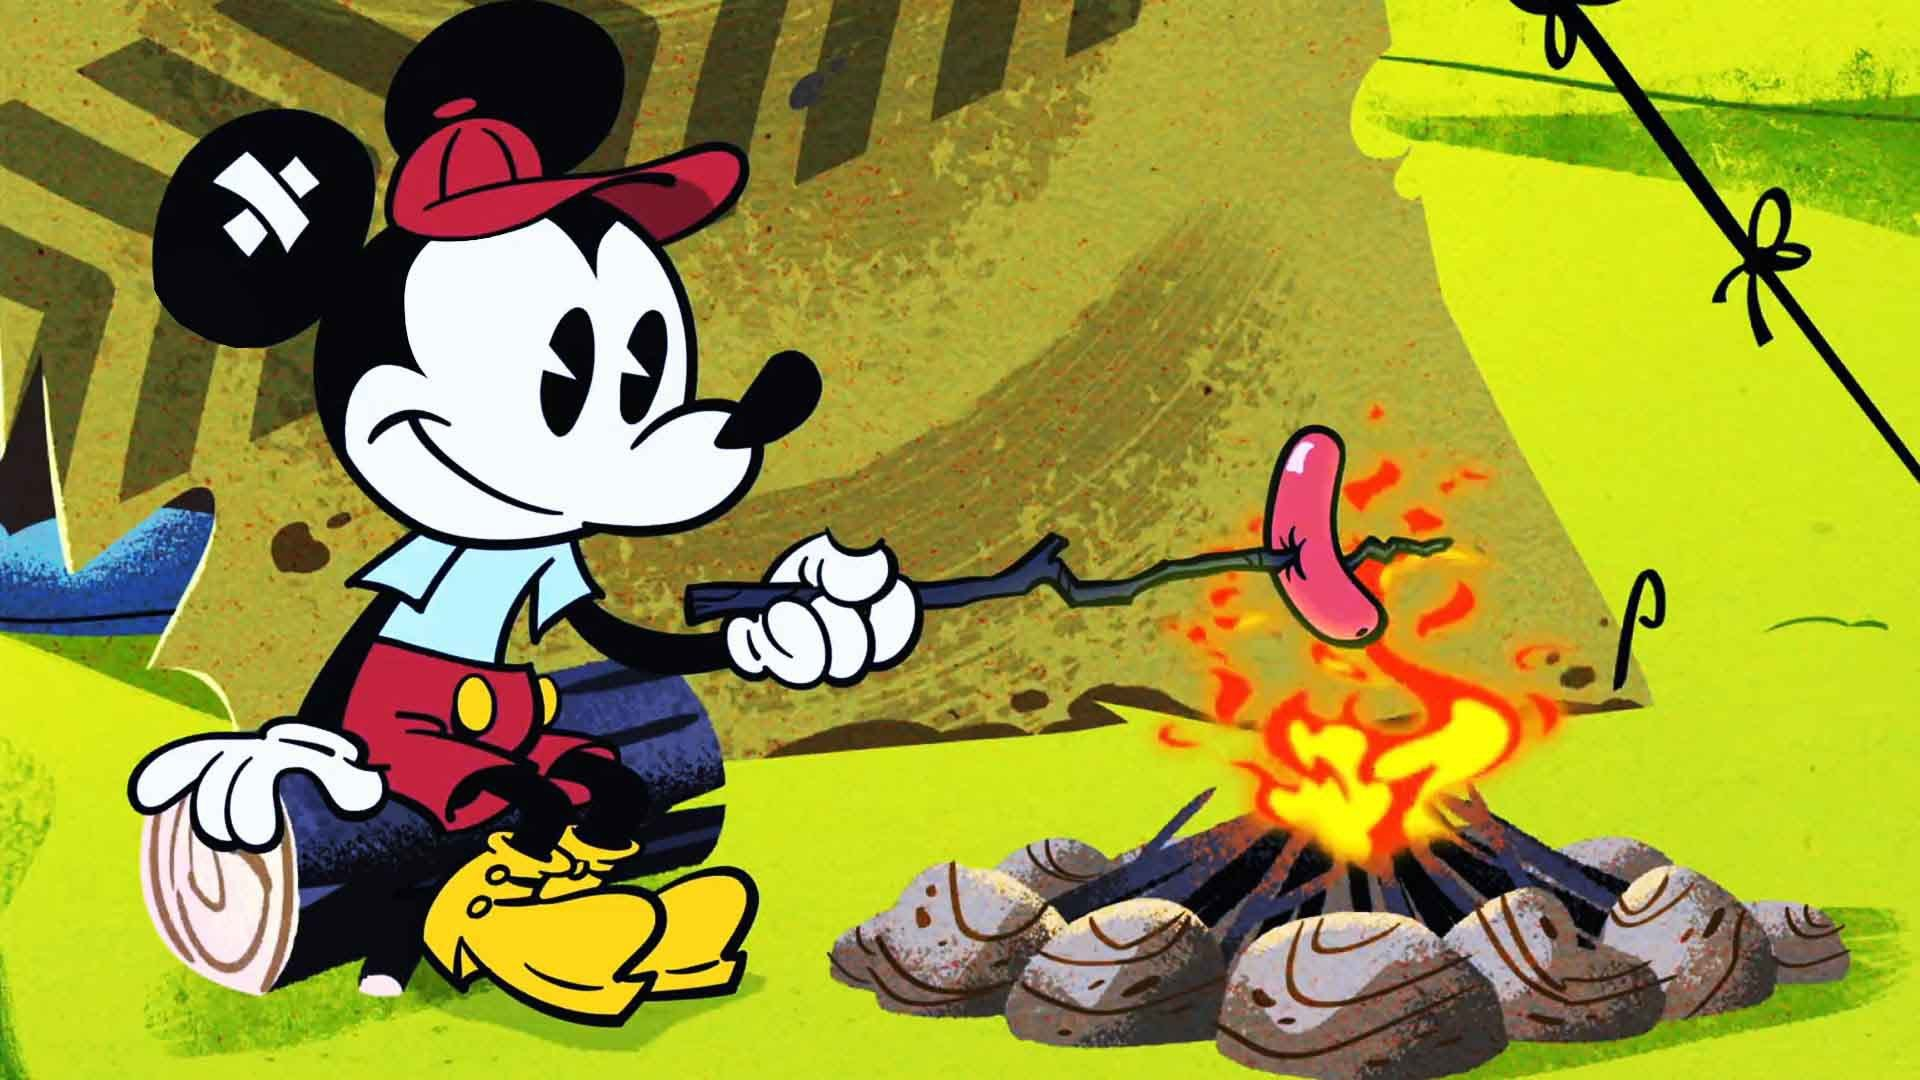 Free-download-mickey-mouse-image-1920x1080-kB-wallpaper-wp3405892